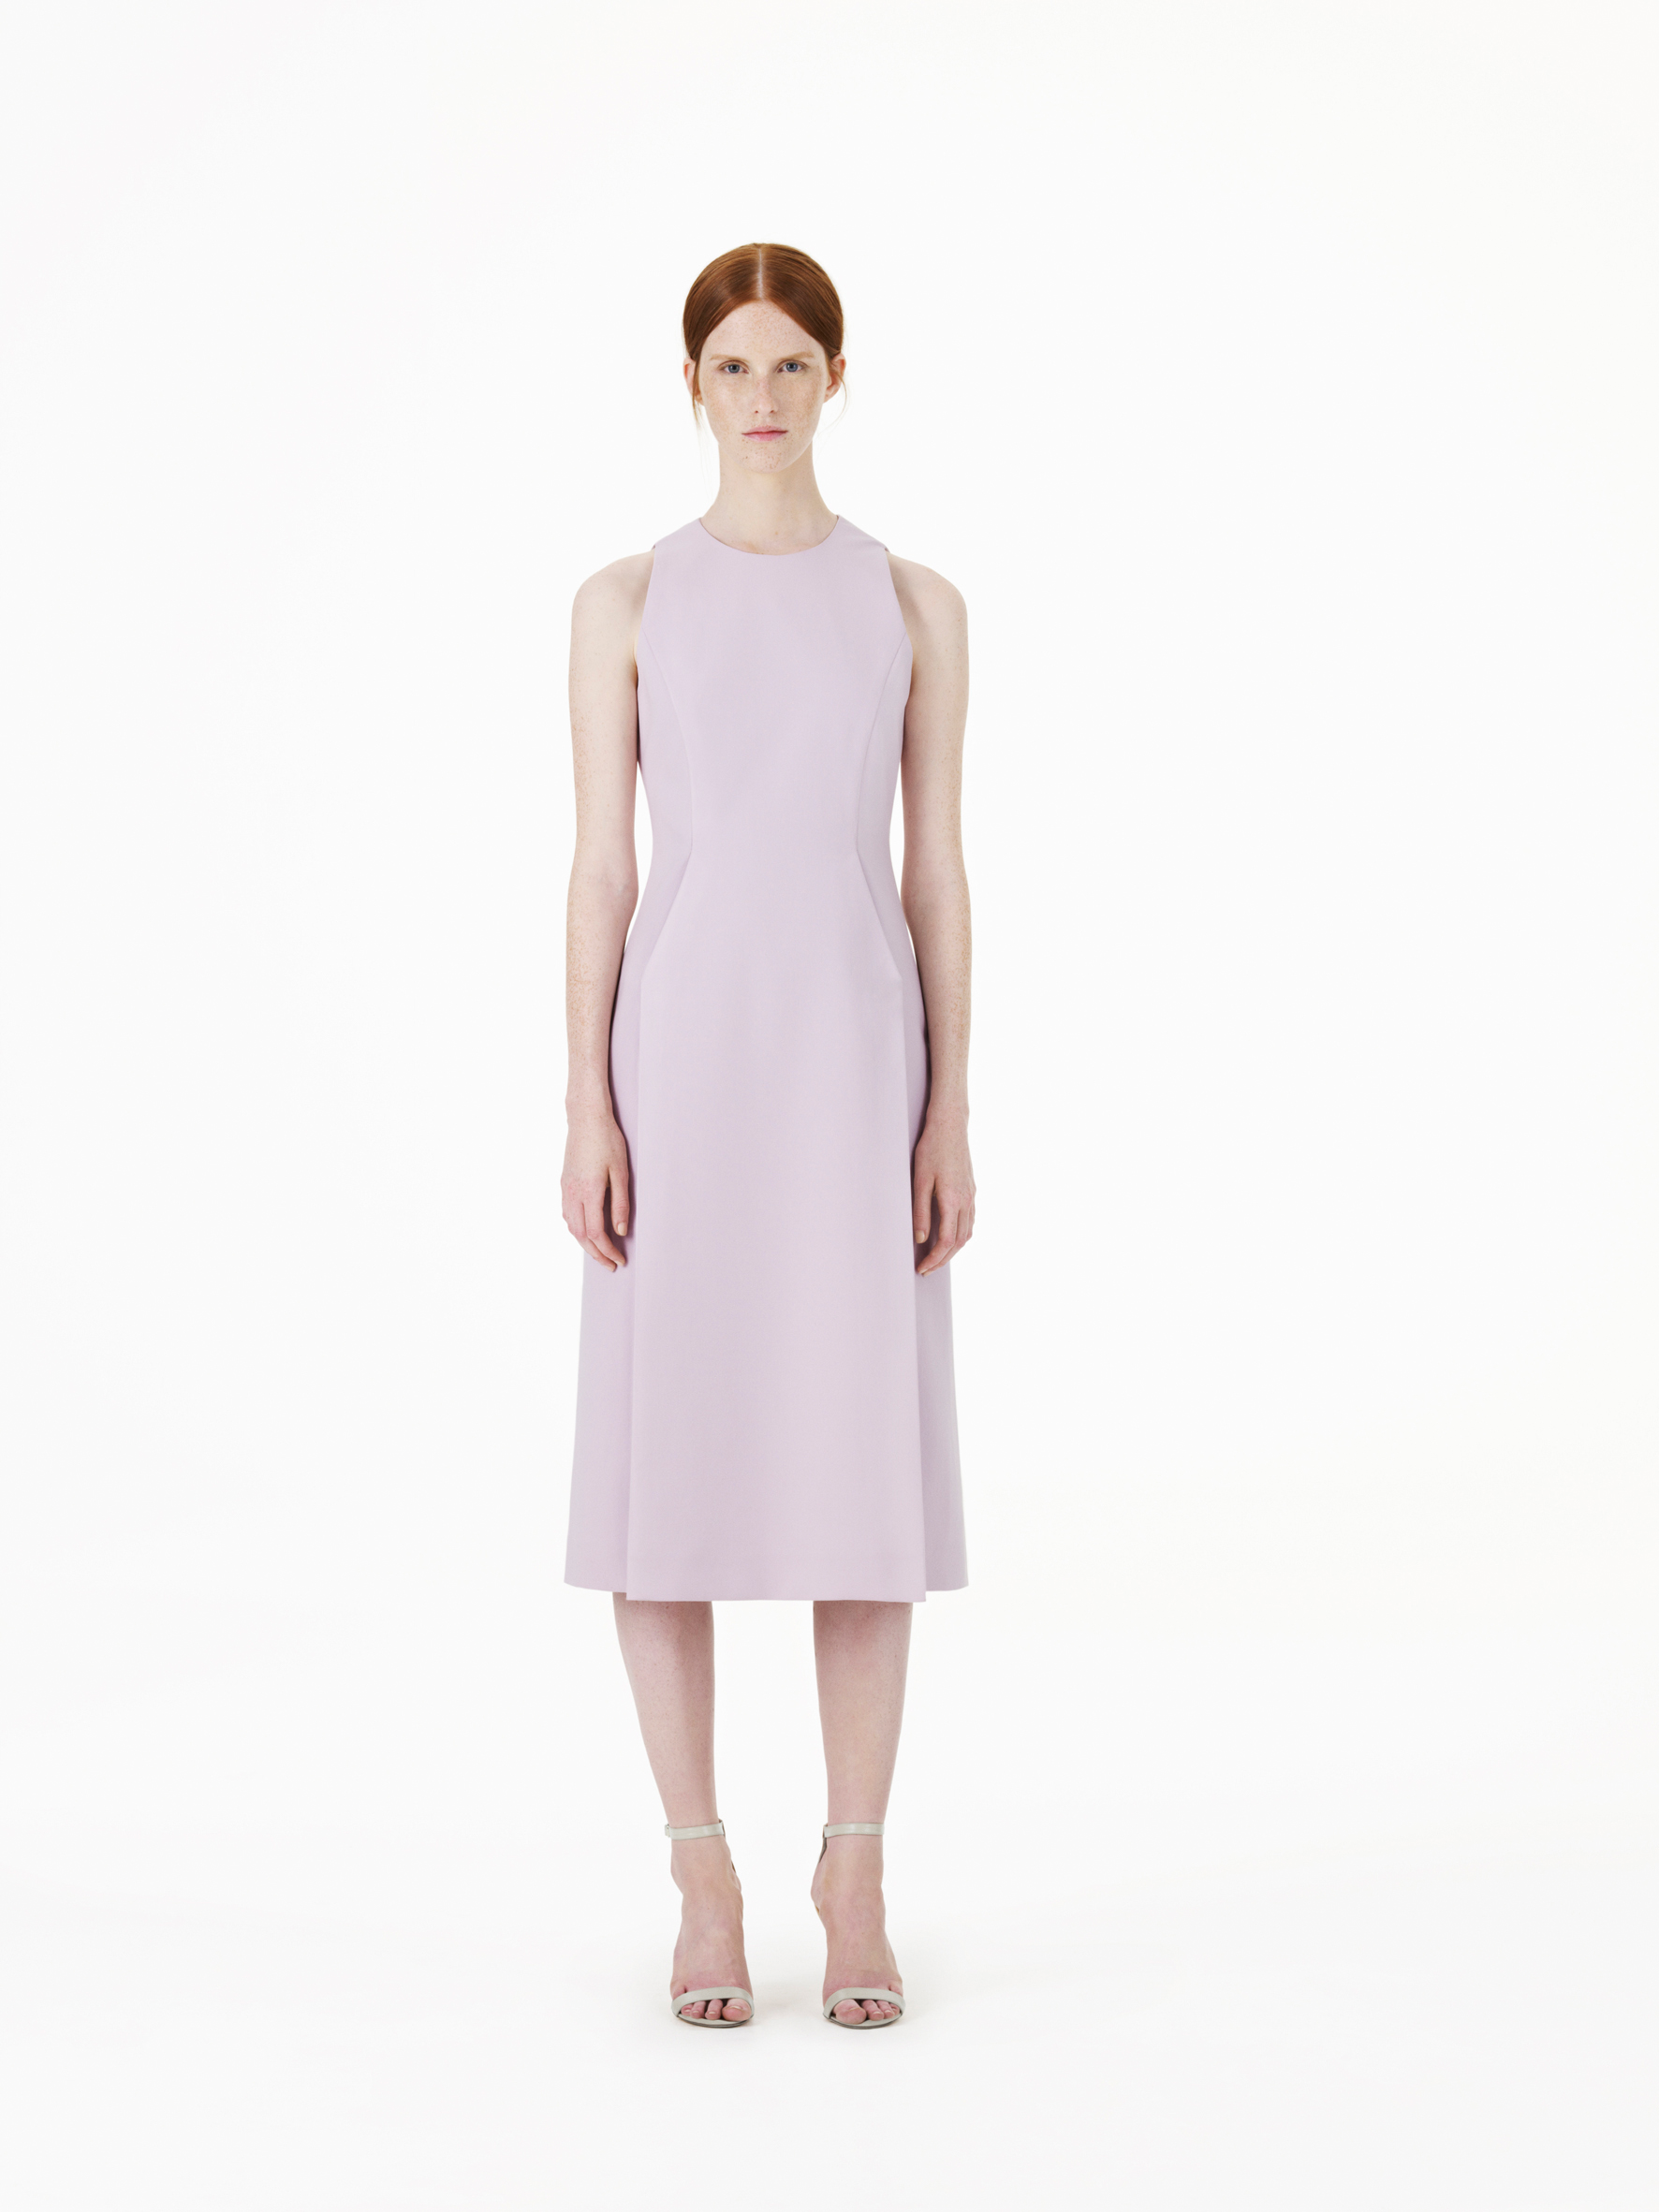 COS_SS14_WOMENS_15_lowres